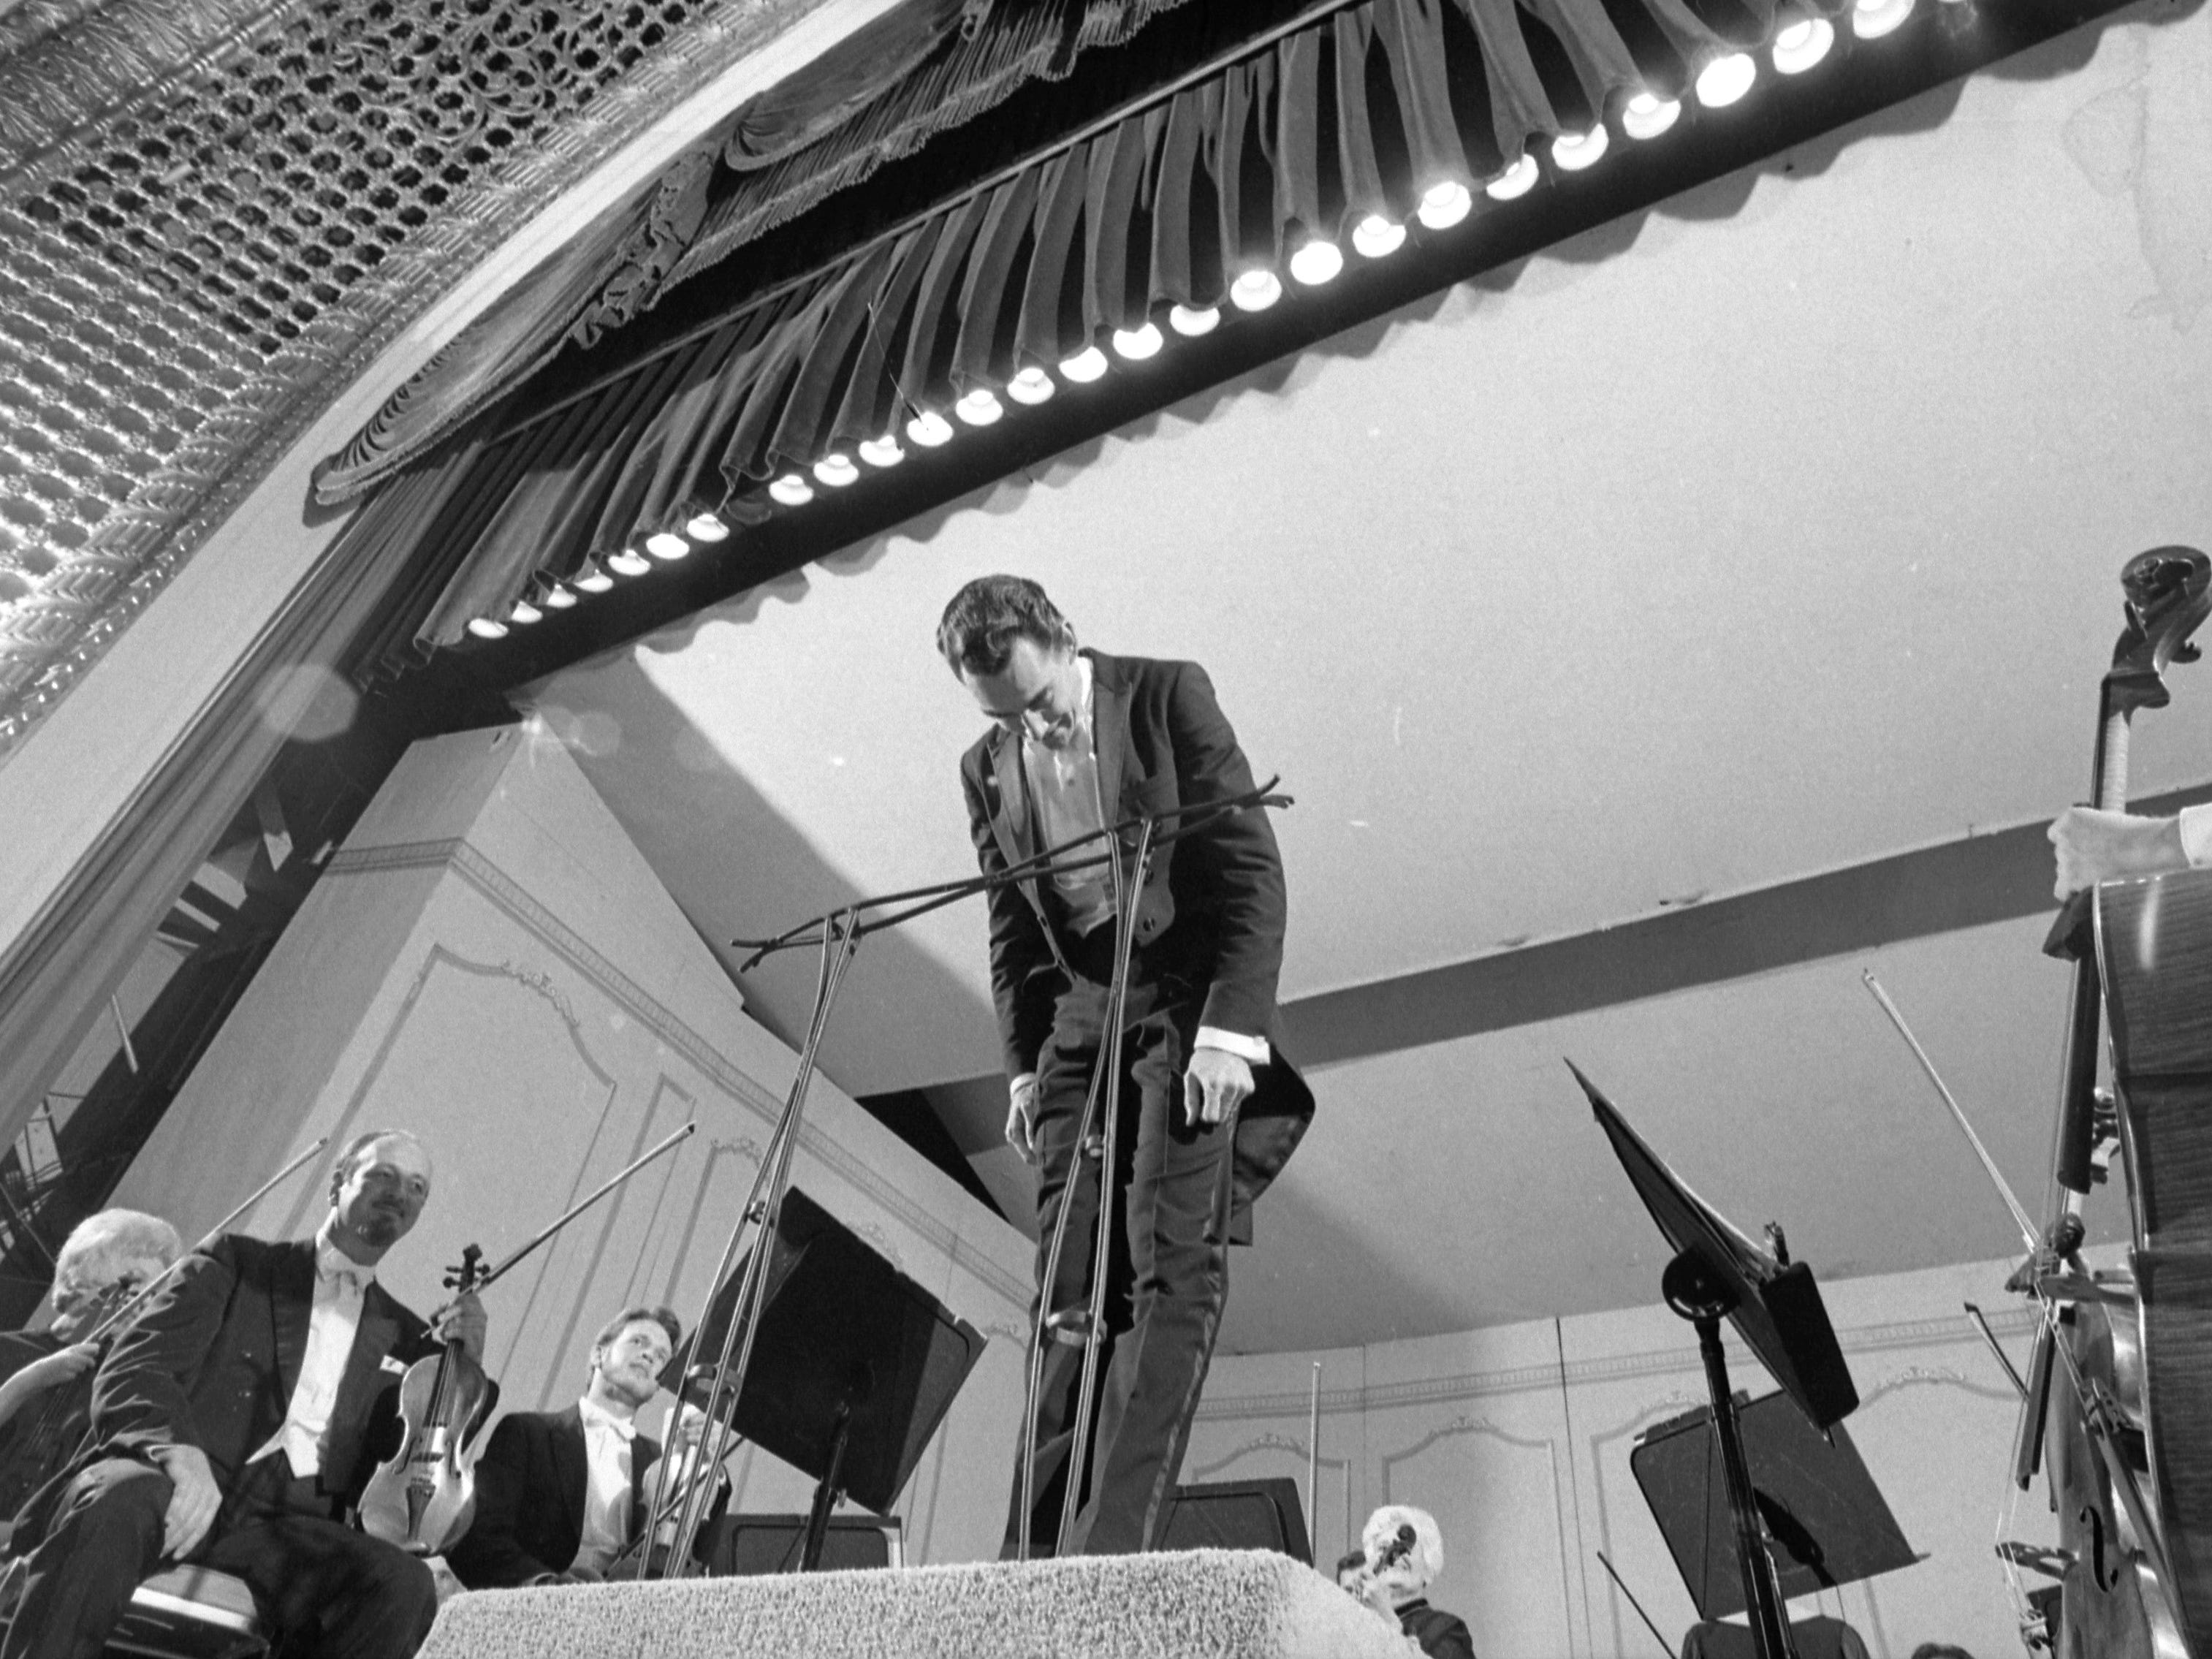 Kenneth Schermerhorn bows to the audience at a Milwaukee Symphony Orchestra performance at the Pabst Theater, during the orchestra's 1968-'69 season, Schermerhorn's first as the MSO's conductor and music director.